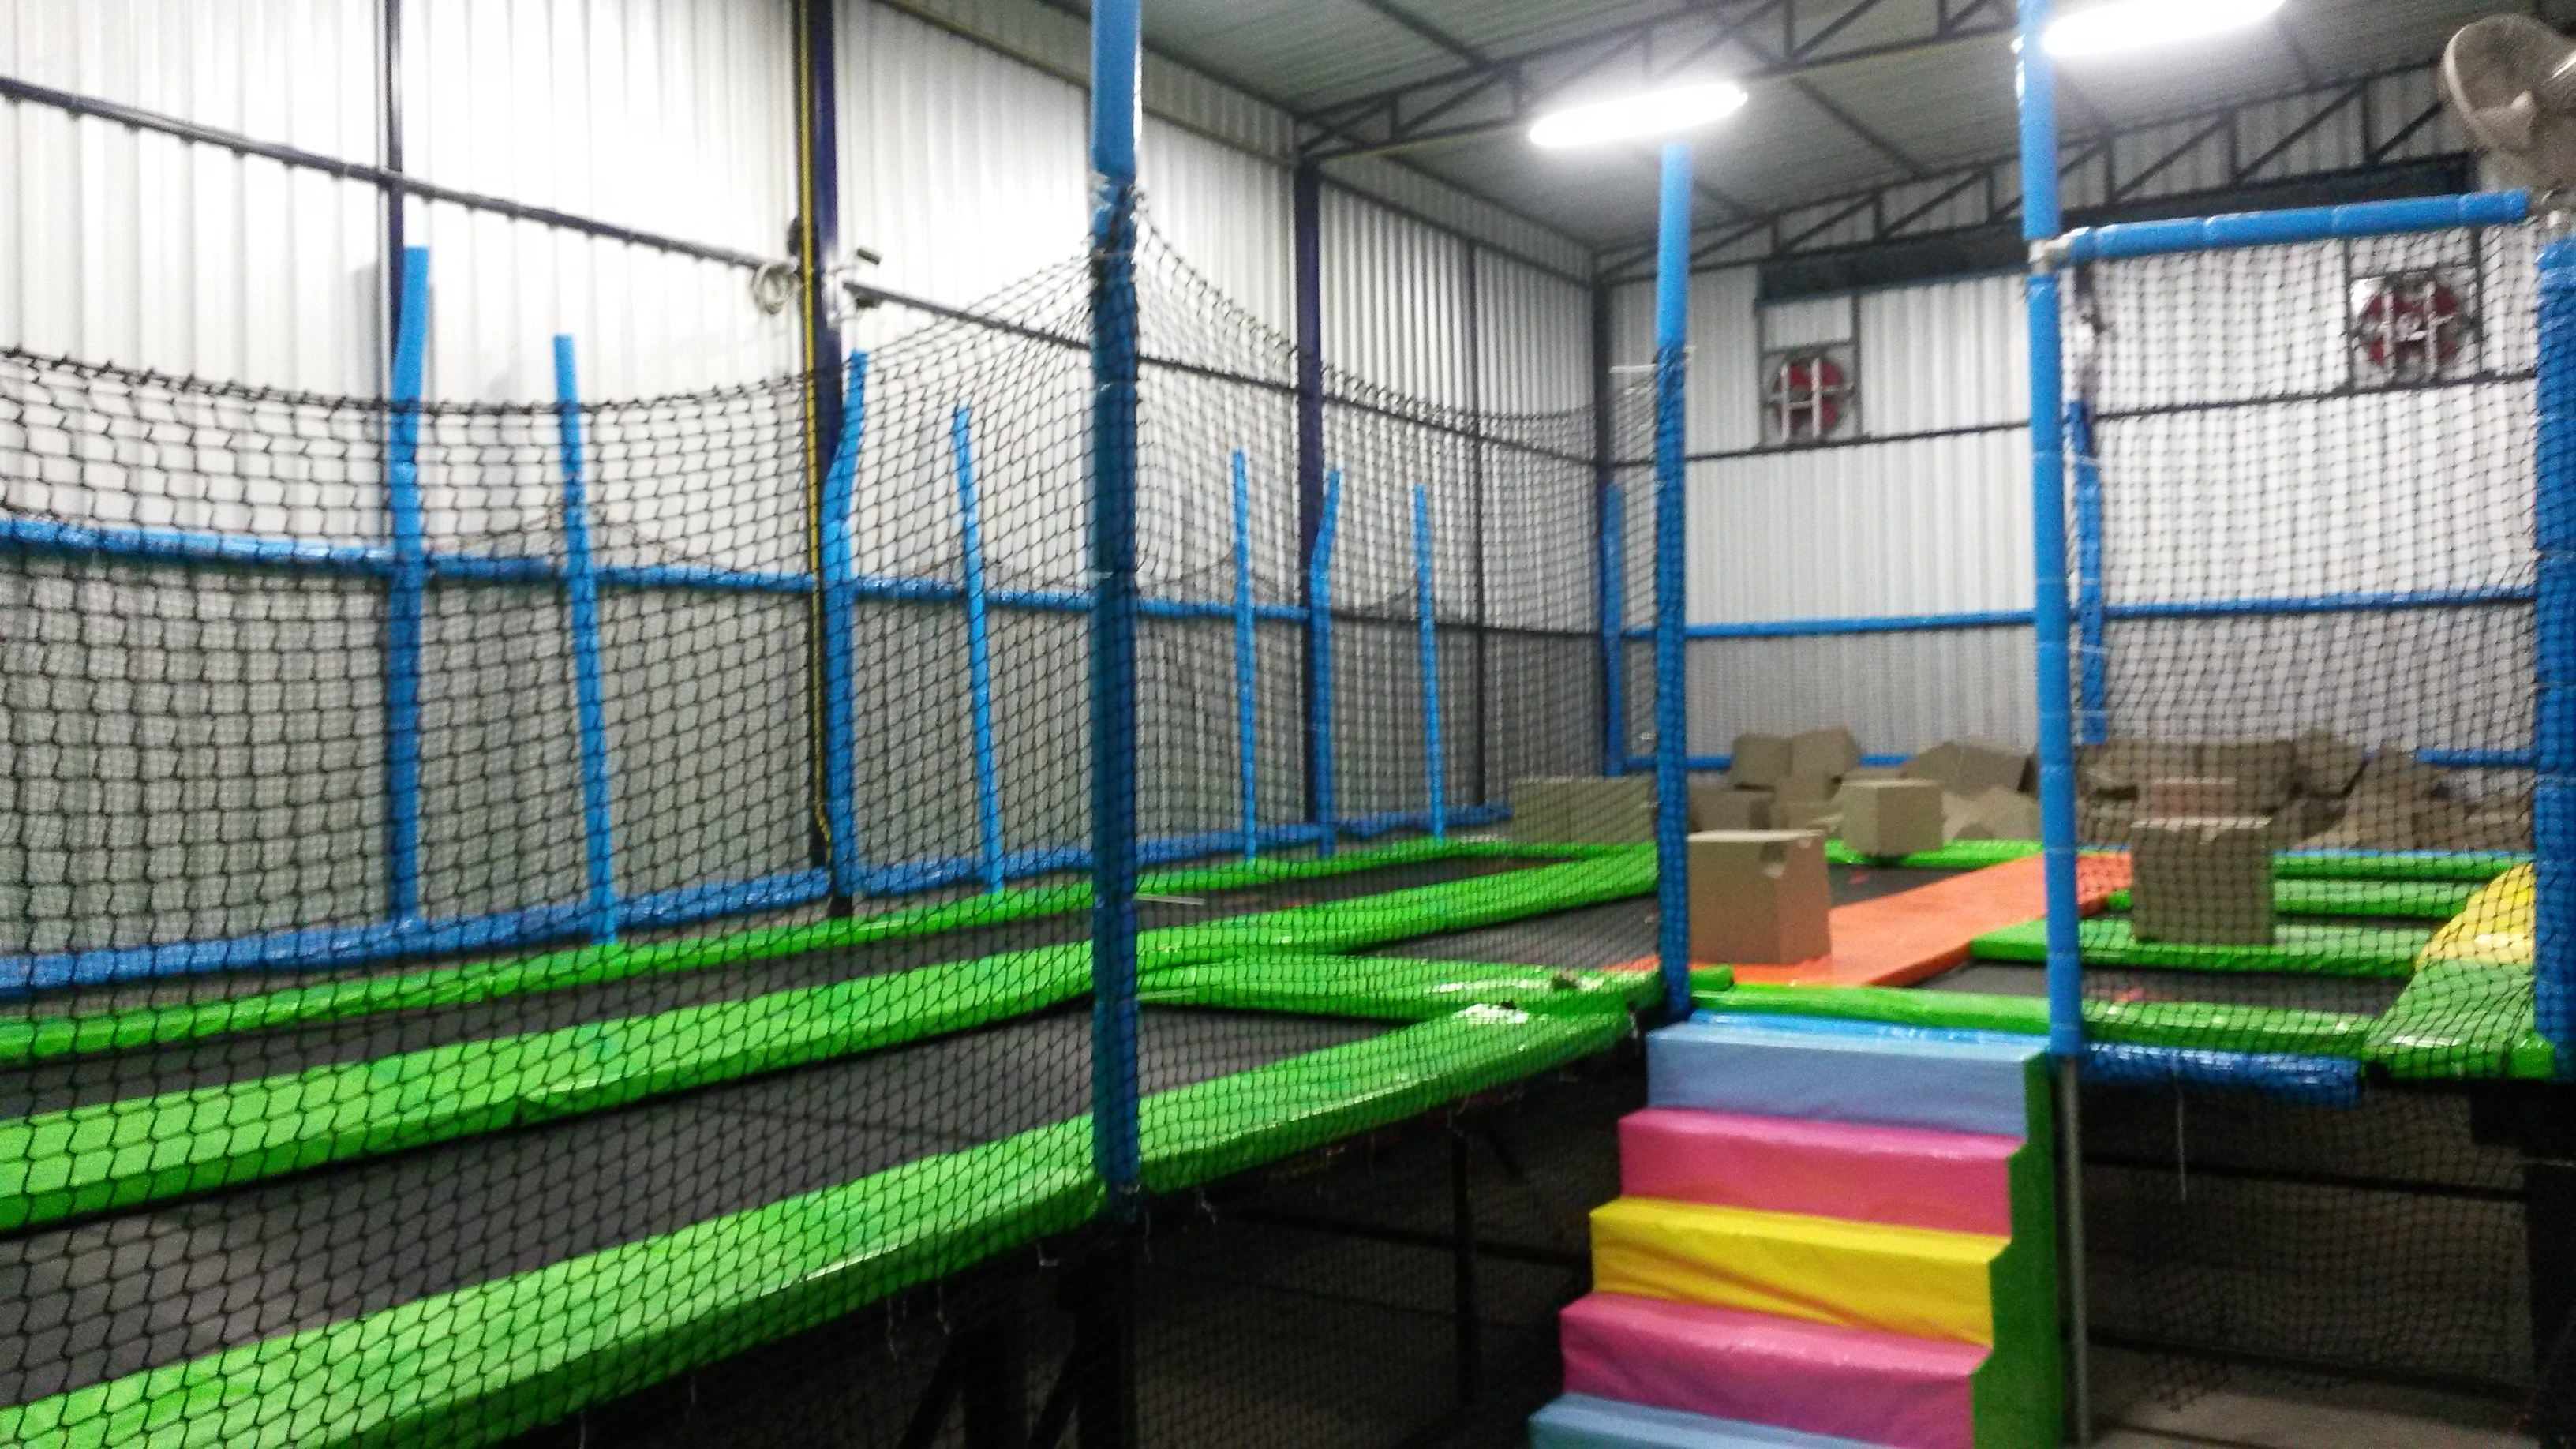 Trampoline room in house - Release Your Inner Child At This Incredibly Fun Trampoline Park The Only One Of Its Kind In Bangkok Not Only Is It An Hour Of Laughs And Amusement